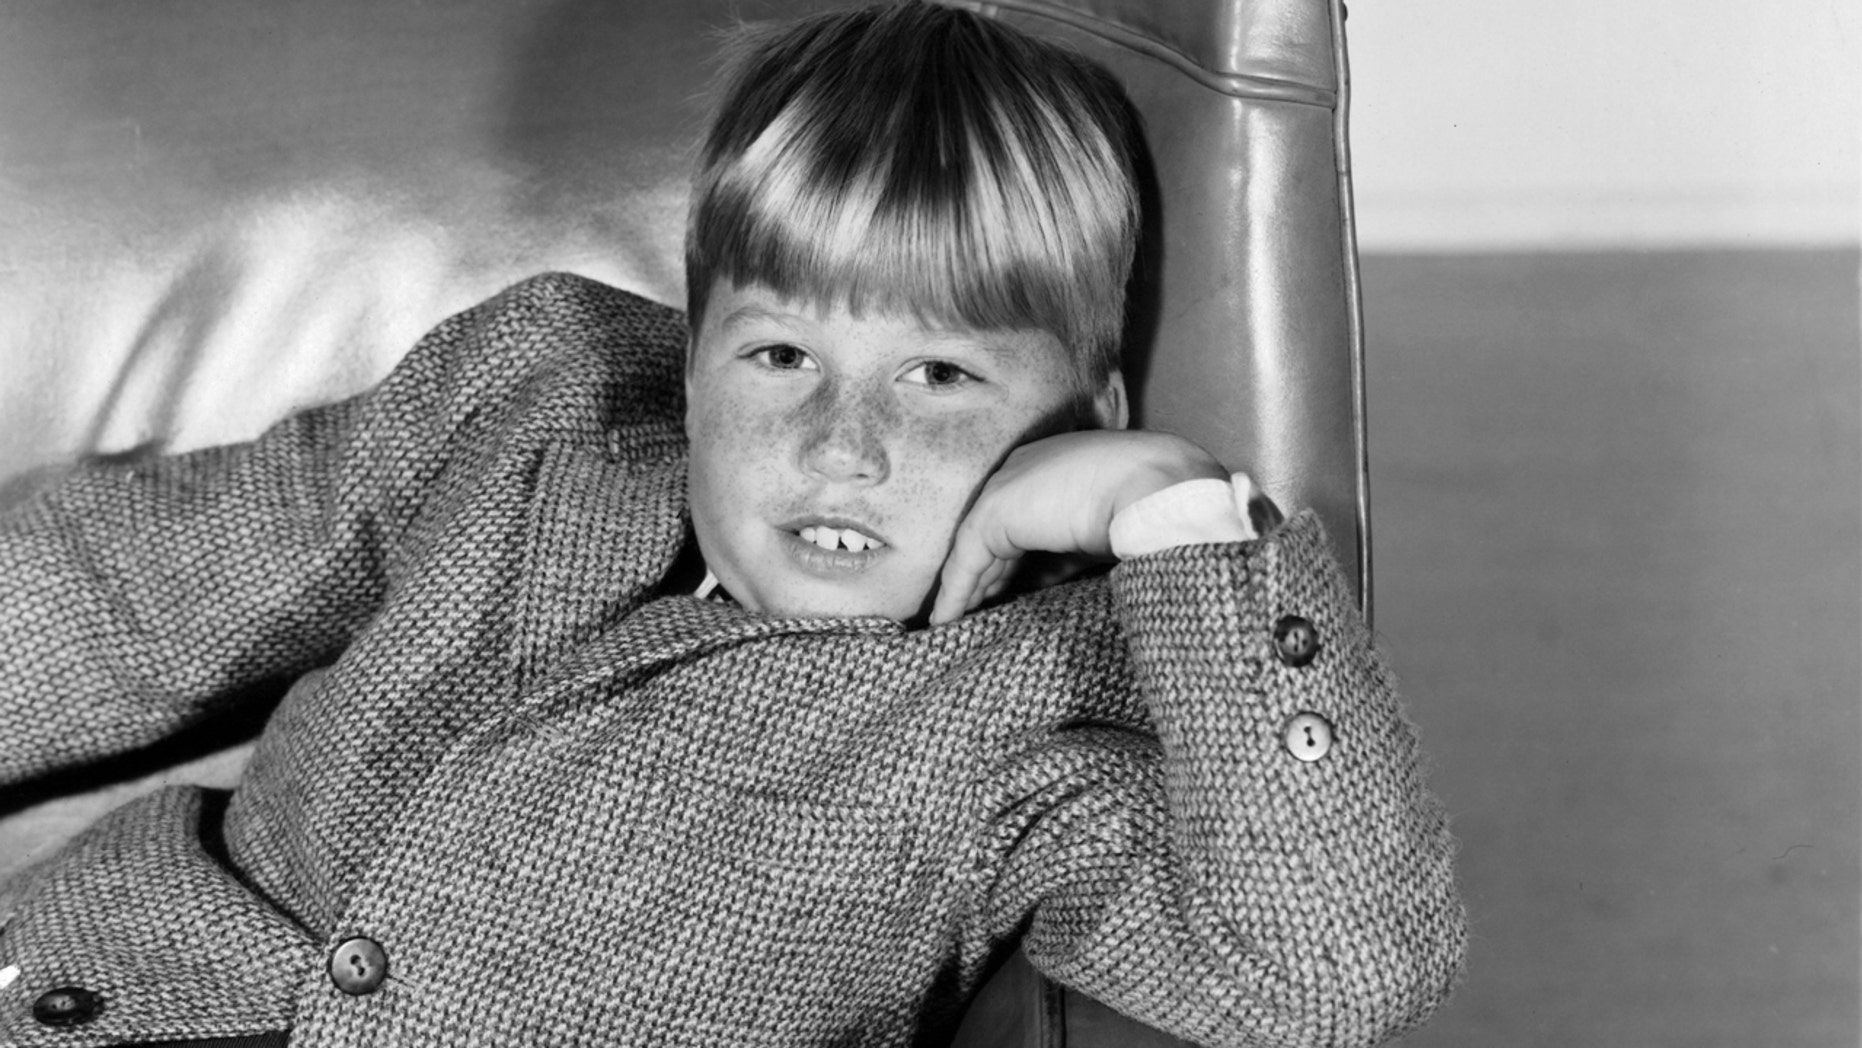 Teddy Rooney sitting in chair in publicity portrait for the film 'Andy Hardy Comes Home', 1958. (Photo by Metro-Goldwyn-Mayer/Getty Images)